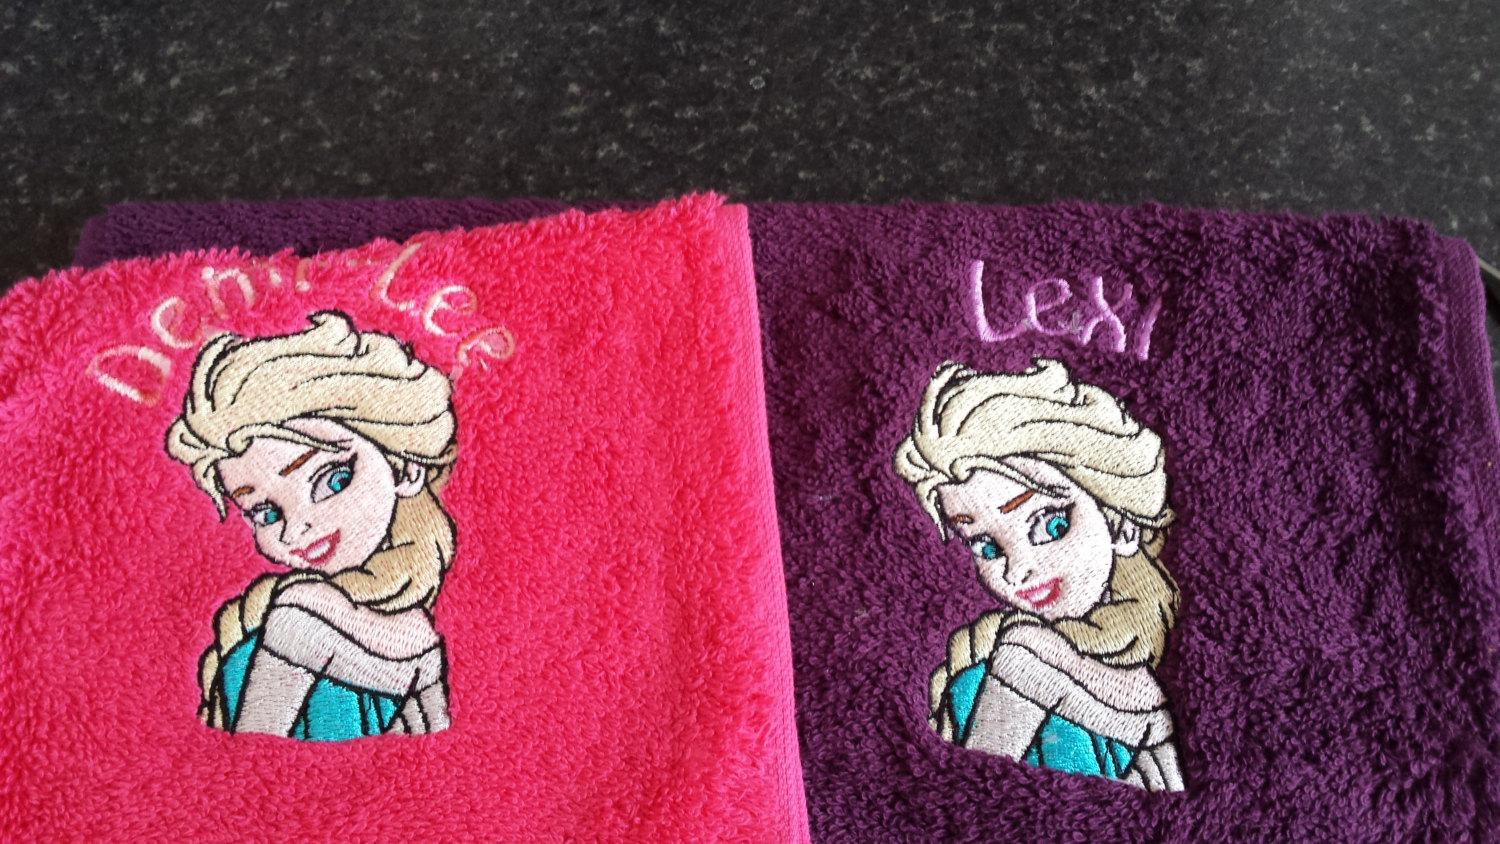 Towels with Elsa embroidery designs